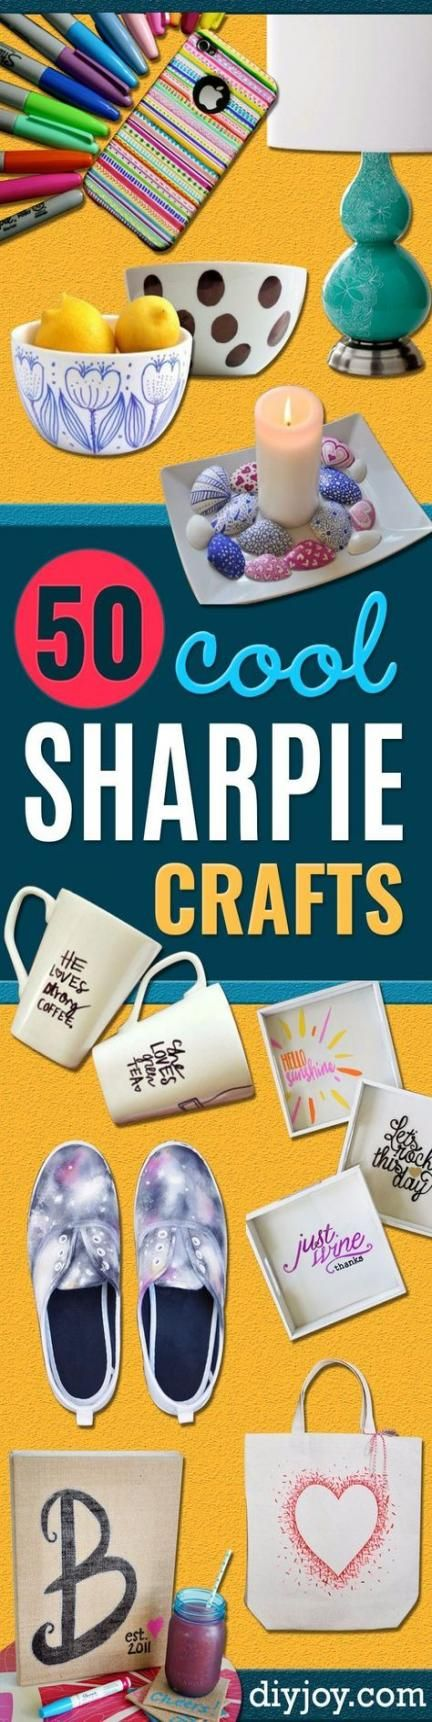 50++ Crafts to do when bored for adults ideas in 2021